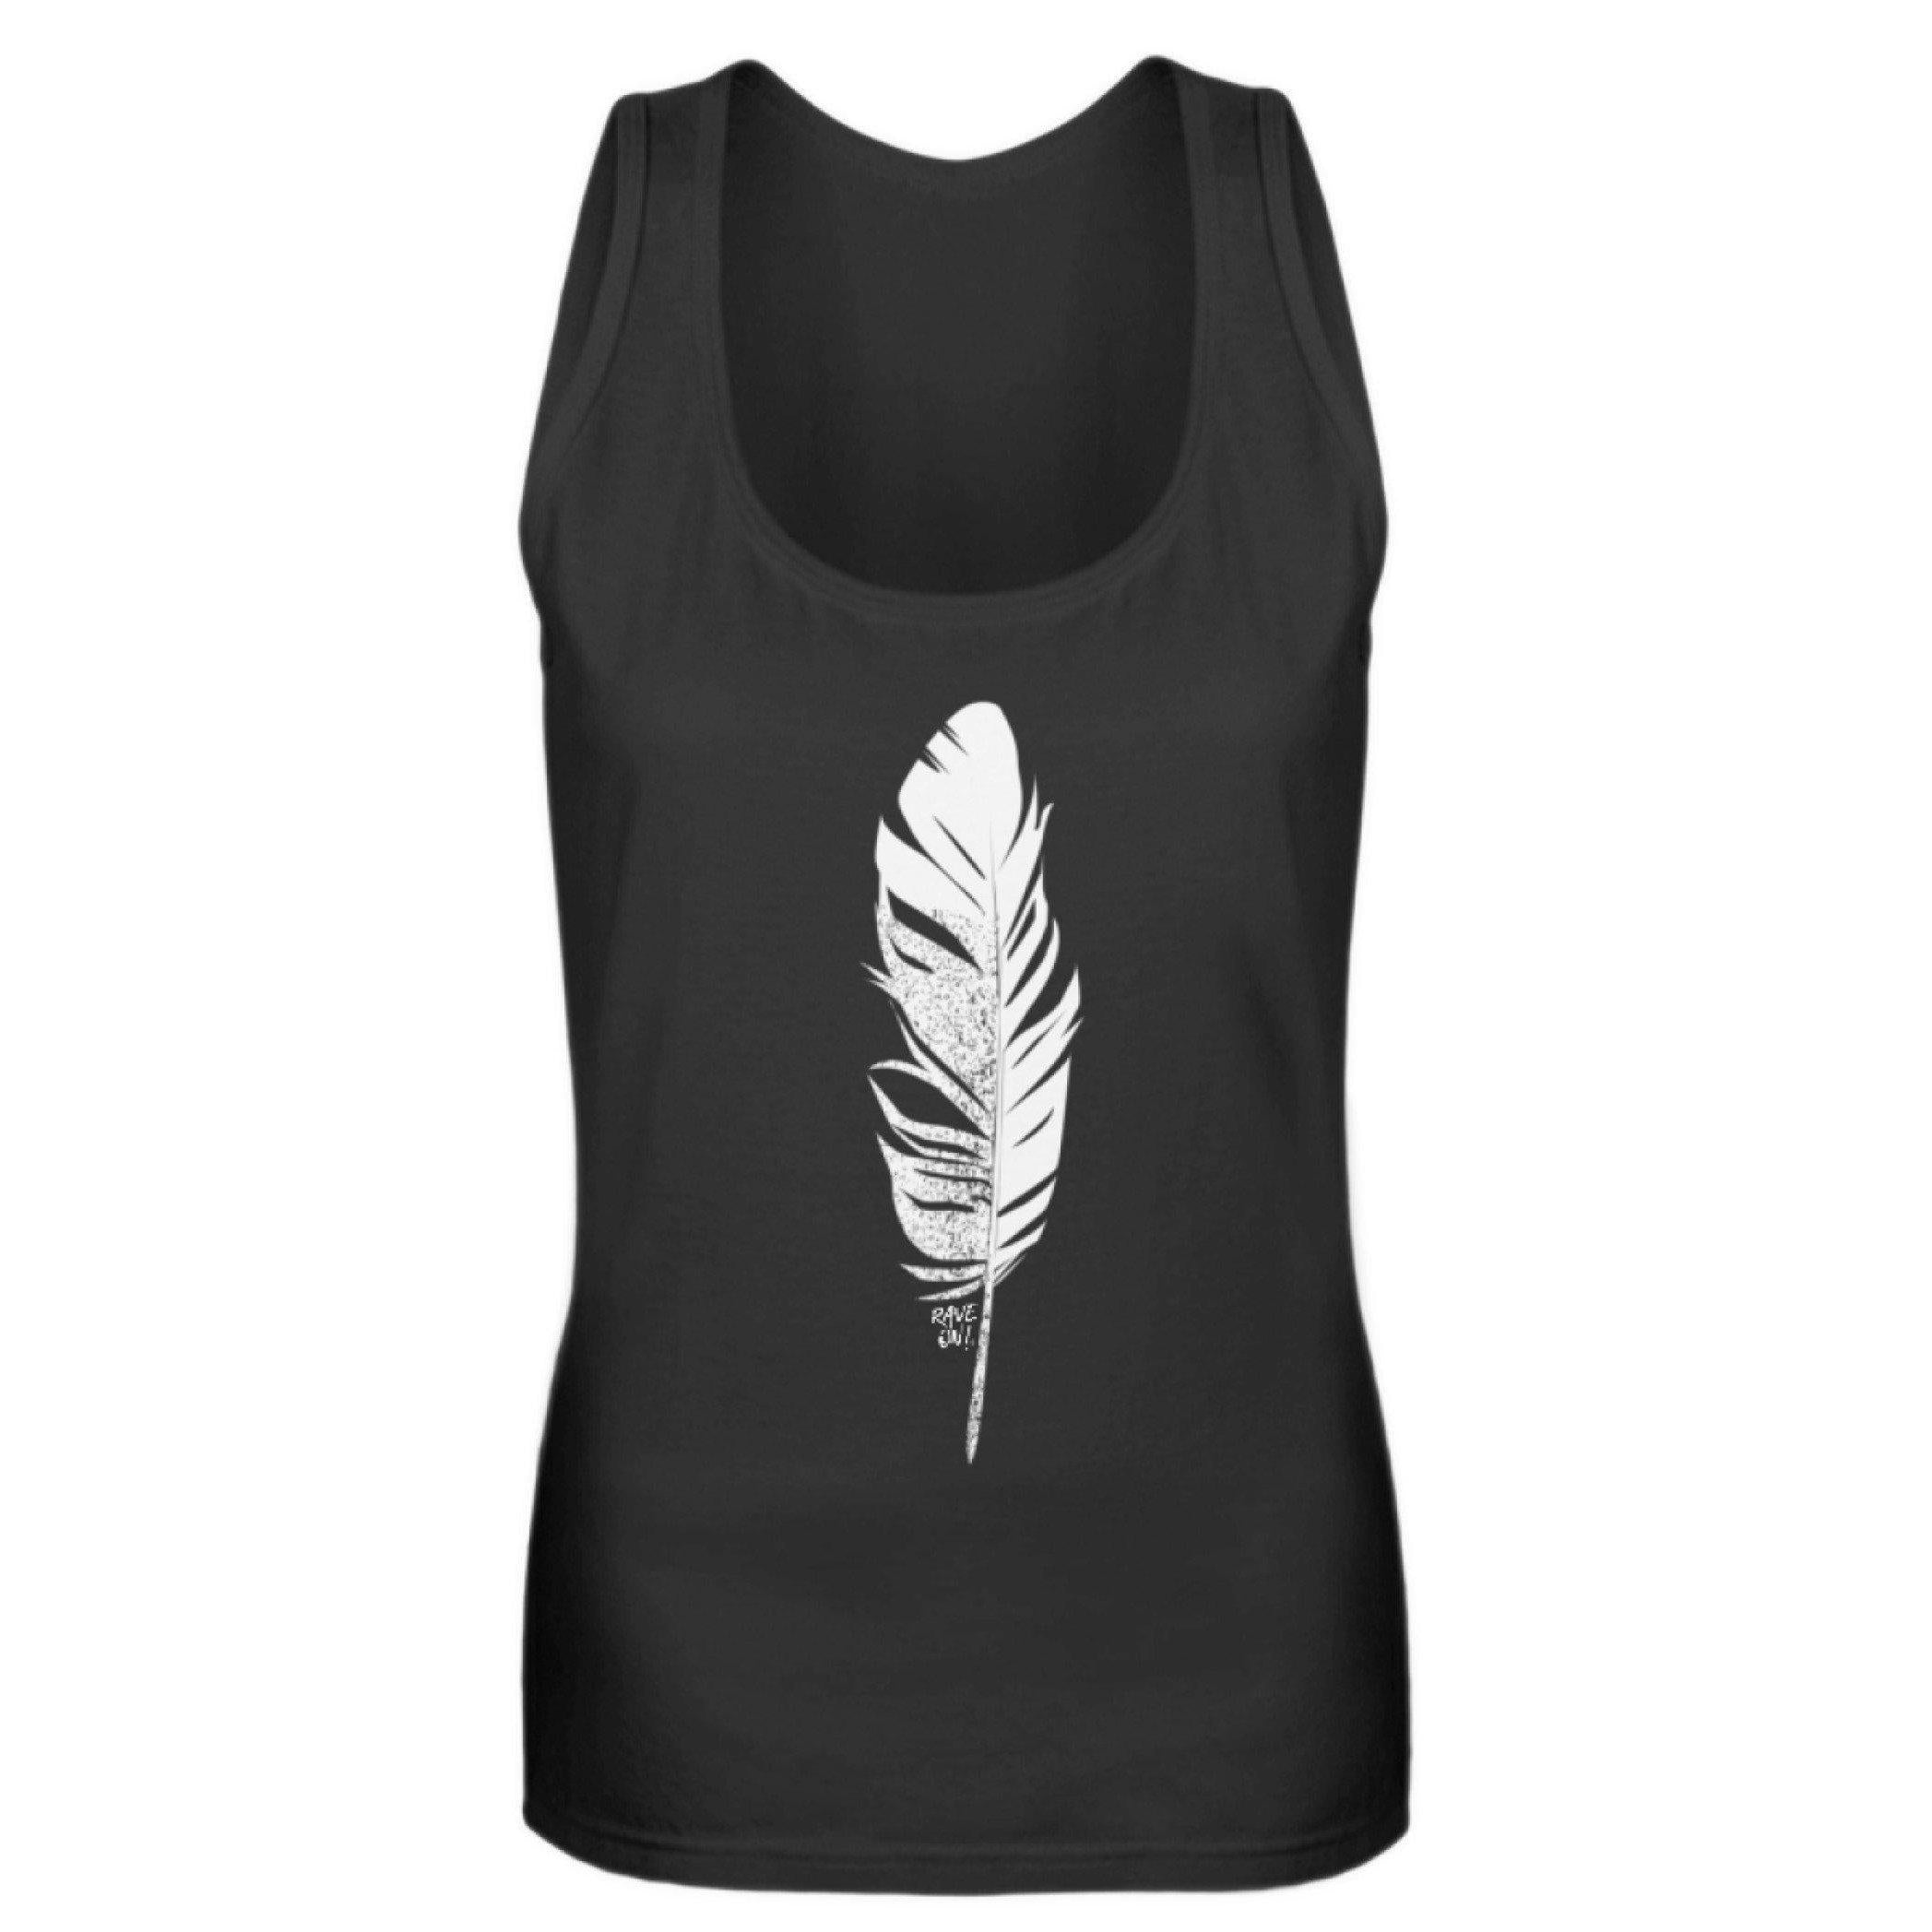 """Raver """"feather"""" Rave On!® - Girls Tanktop Women Tank-Top Black / S - Rave On!® the club & techno scene shop for cool young fashion streetwear style & fashion outfits + sexy festival 420 stuff"""